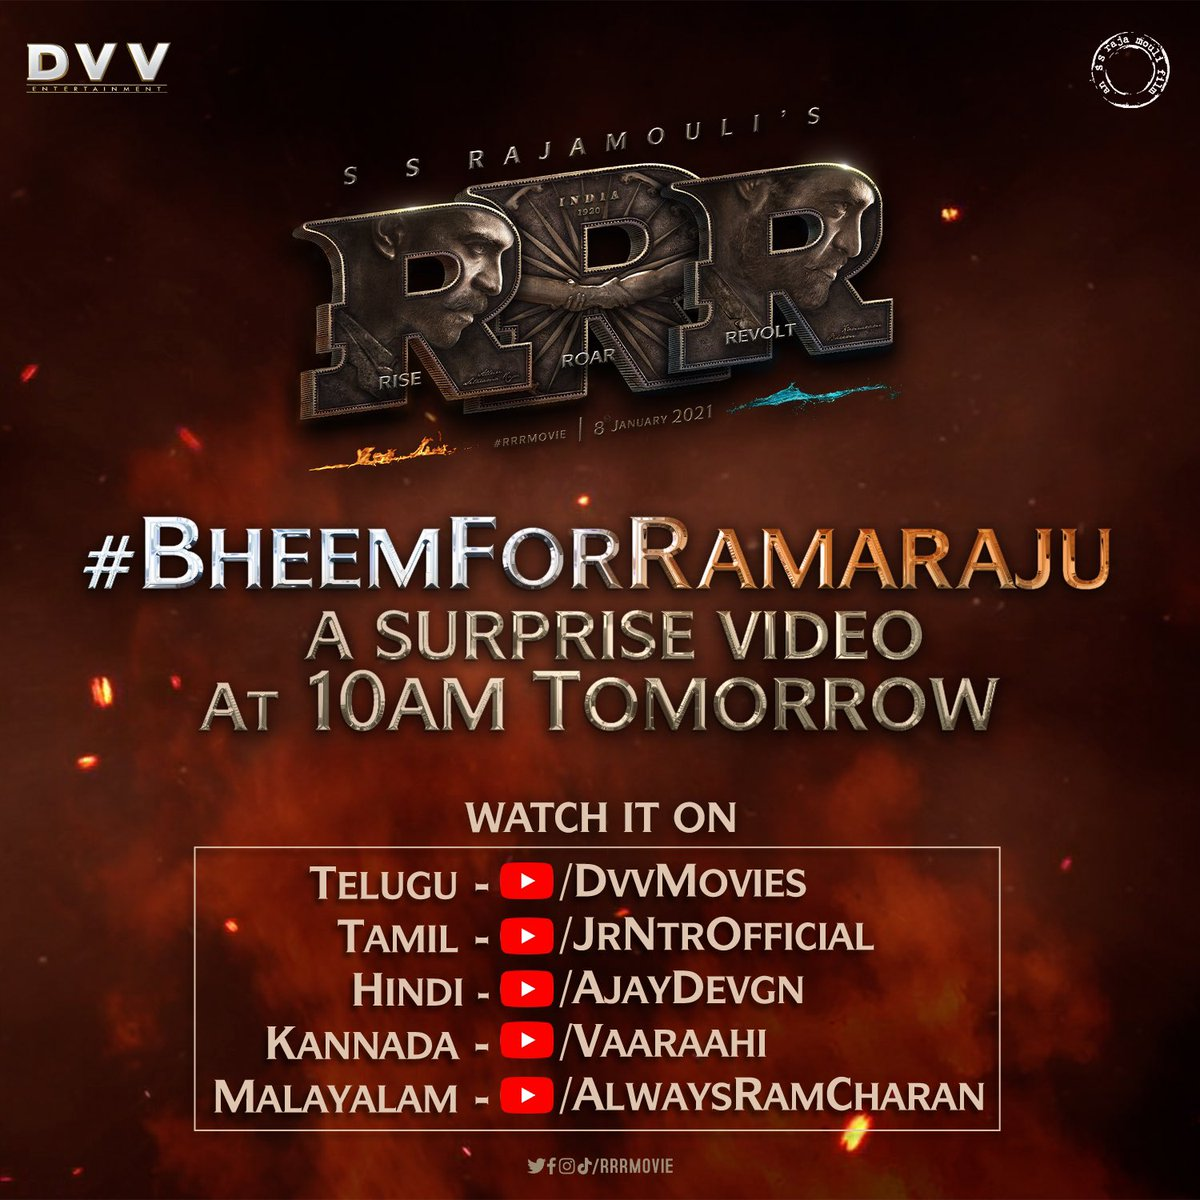 Bro @AlwaysRamCharan, I wish I could've celebrated your birthday under better circumstances. But since we're under a lockdown &  because staying home is important,I'm giving you a digital surprise at 10am tomorrow. Trust me,this is a bang you won't ever forget  #BheemforRamaraju